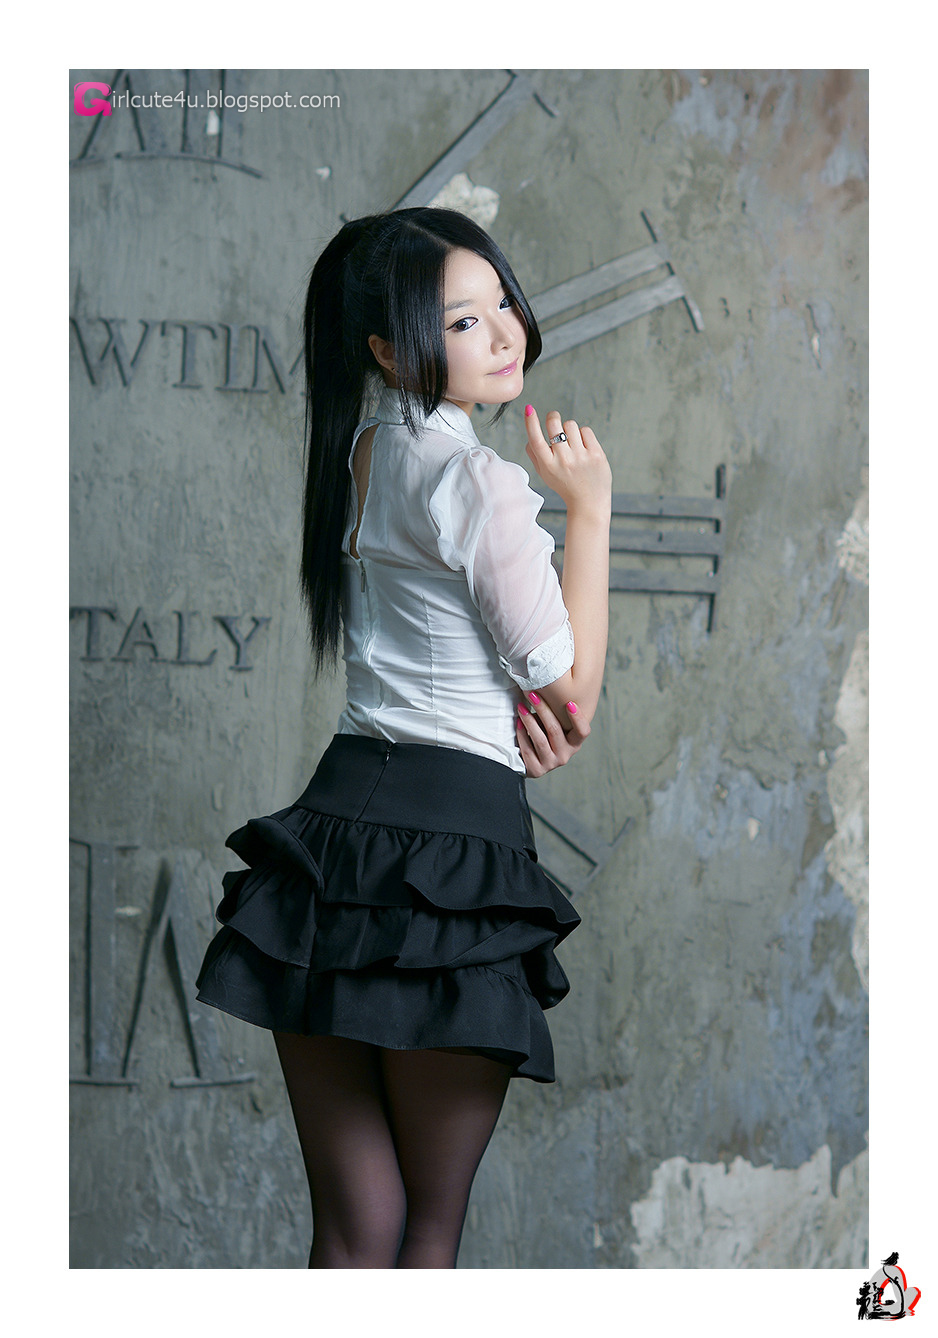 Xxx Nude Girls Lee Eun Seo - White Sheer And Ruffle Skirt-3793